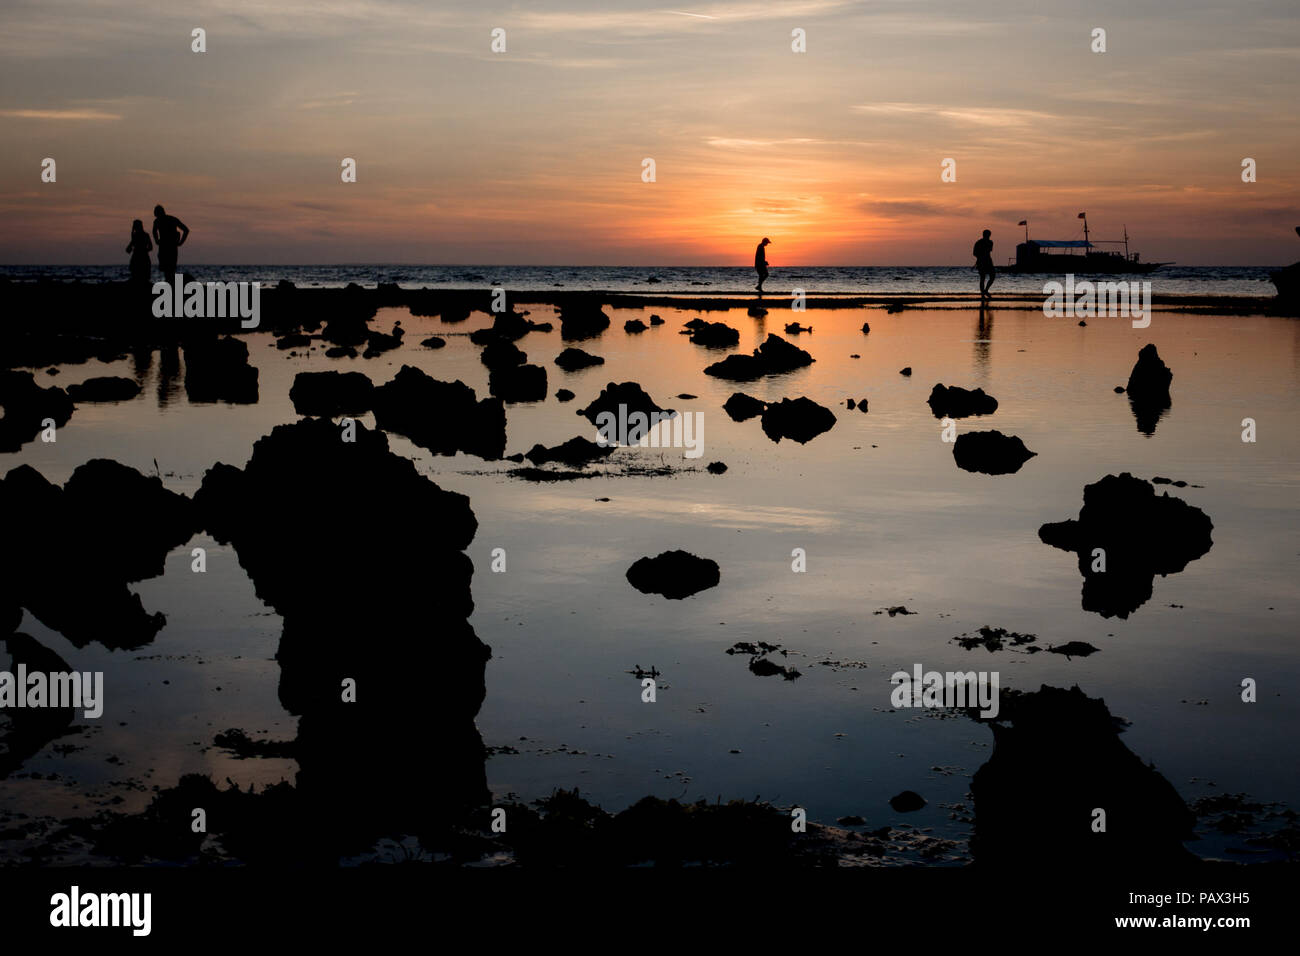 Silhouetted rocky beach scene with locals and tourists collecting starfish and sea-urchins at low tide sunrise - Malapascua Island - Philippines - Stock Image